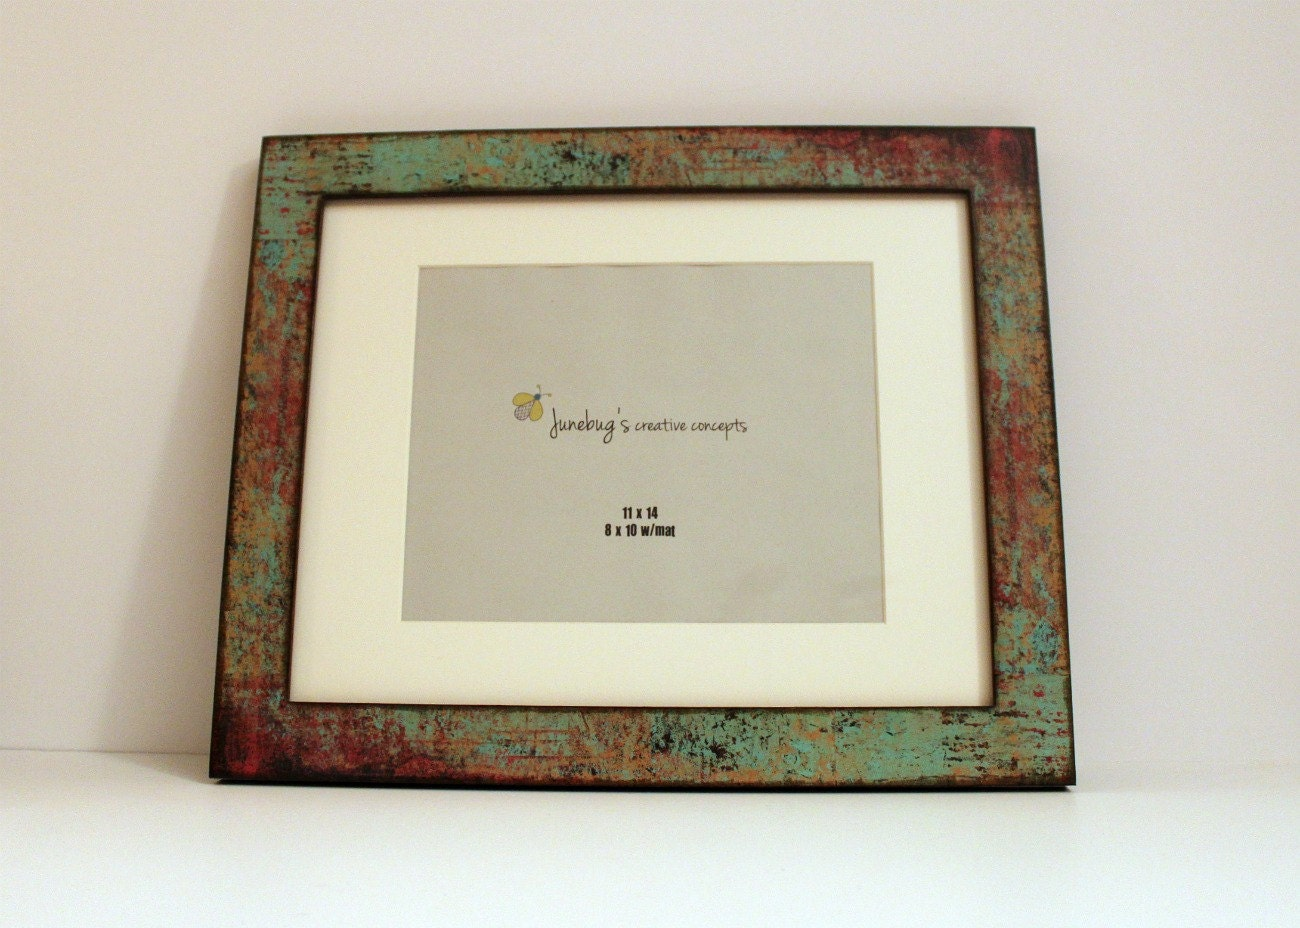 11x14 8x10 mat wood photo frame oxidized turquoise red. Black Bedroom Furniture Sets. Home Design Ideas